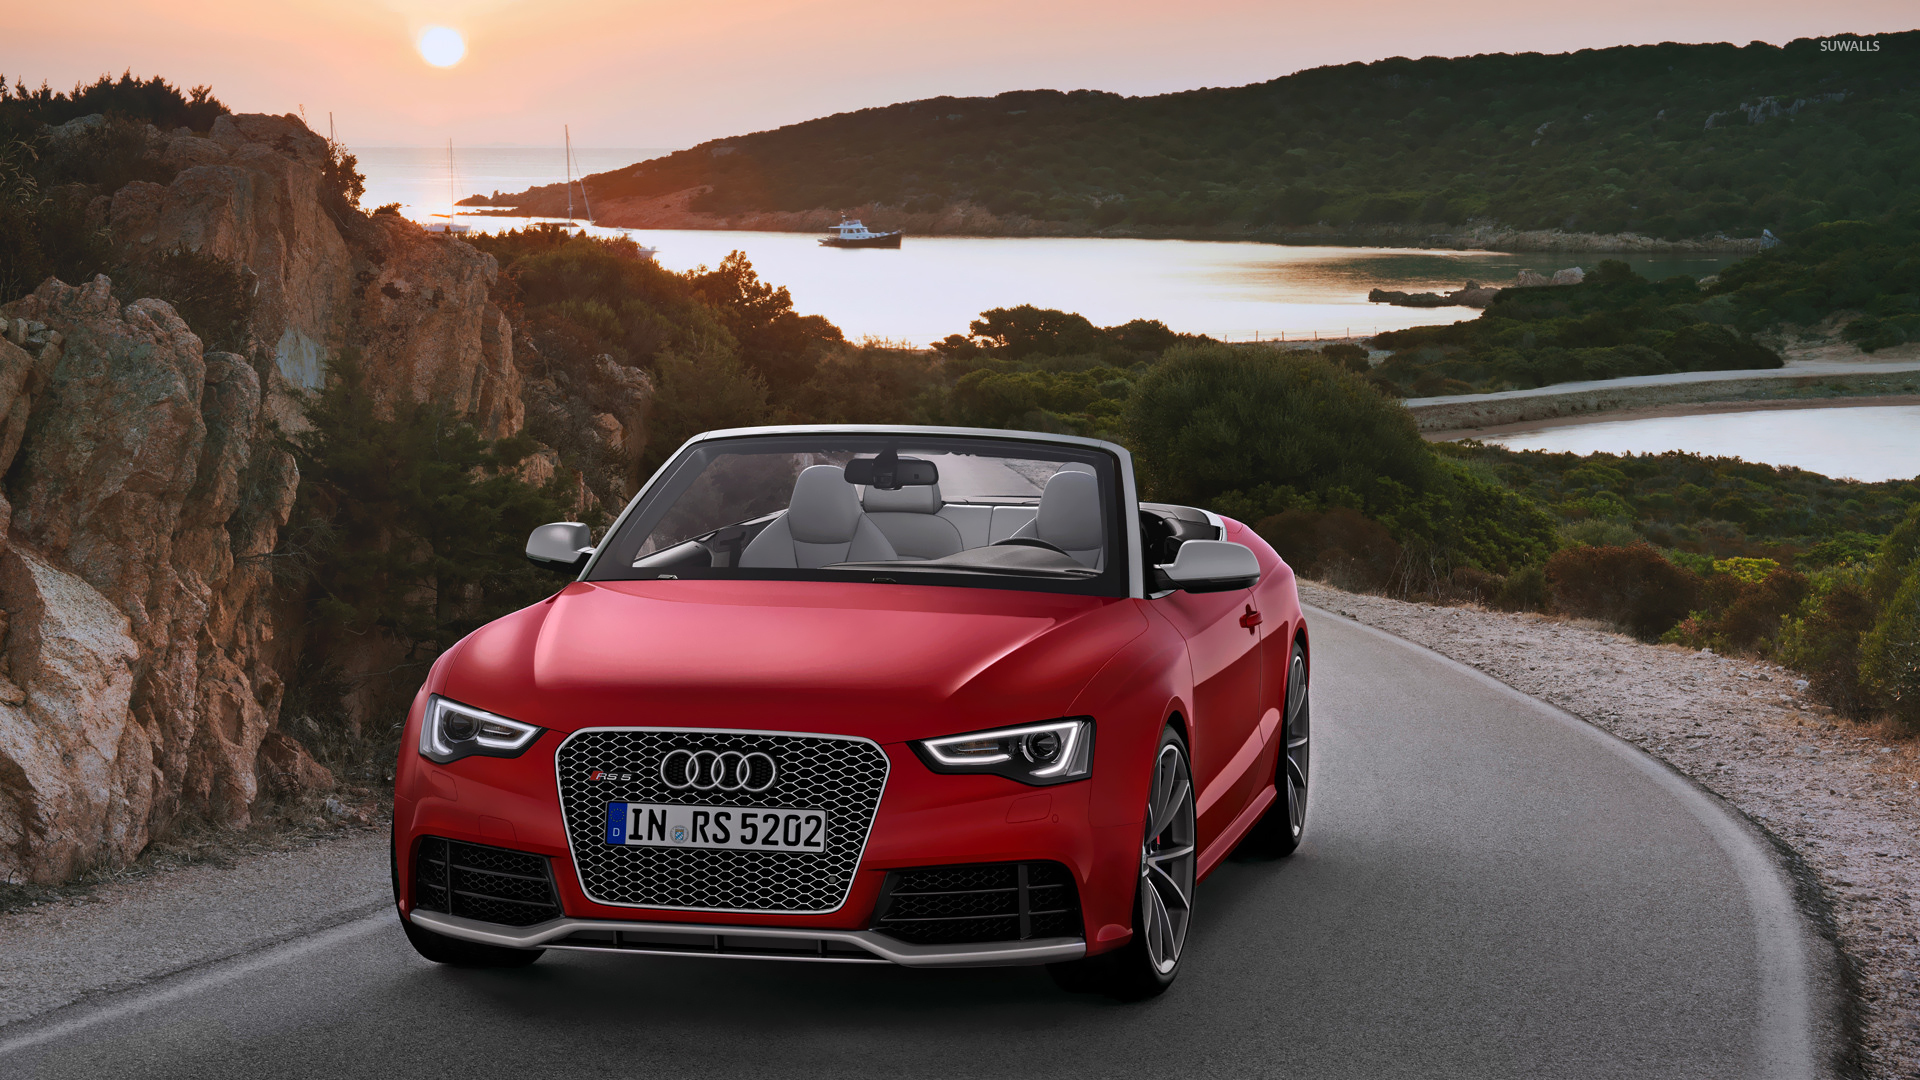 2014 Red Audi Rs5 Cabriolet Wallpaper Car Wallpapers 52903